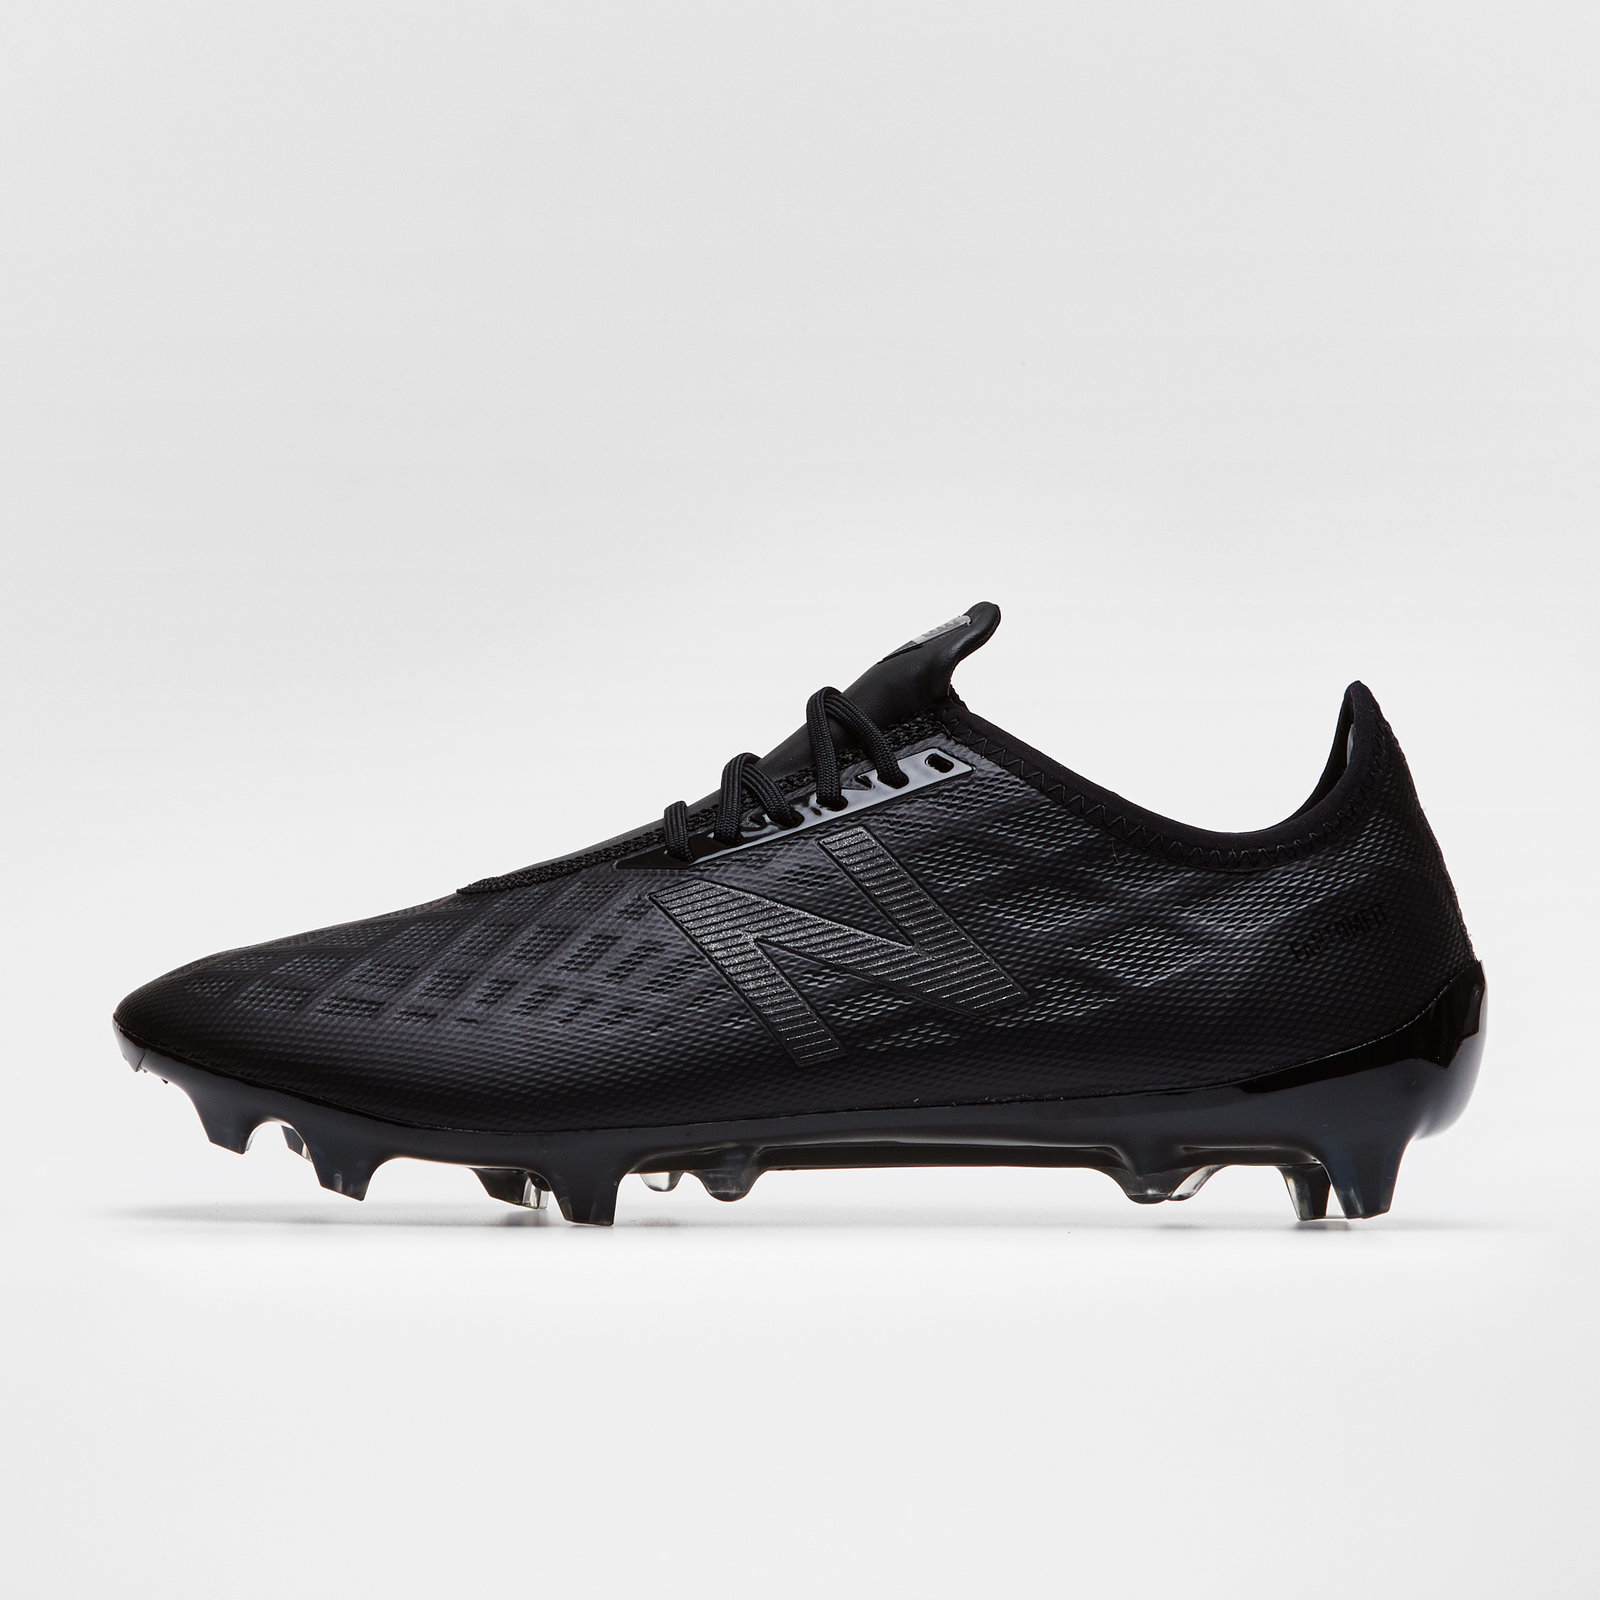 f4660474 Details about New Balance Mens Furon 4.0 Pro Firm Ground Football Boots  Trainers Shoes Black